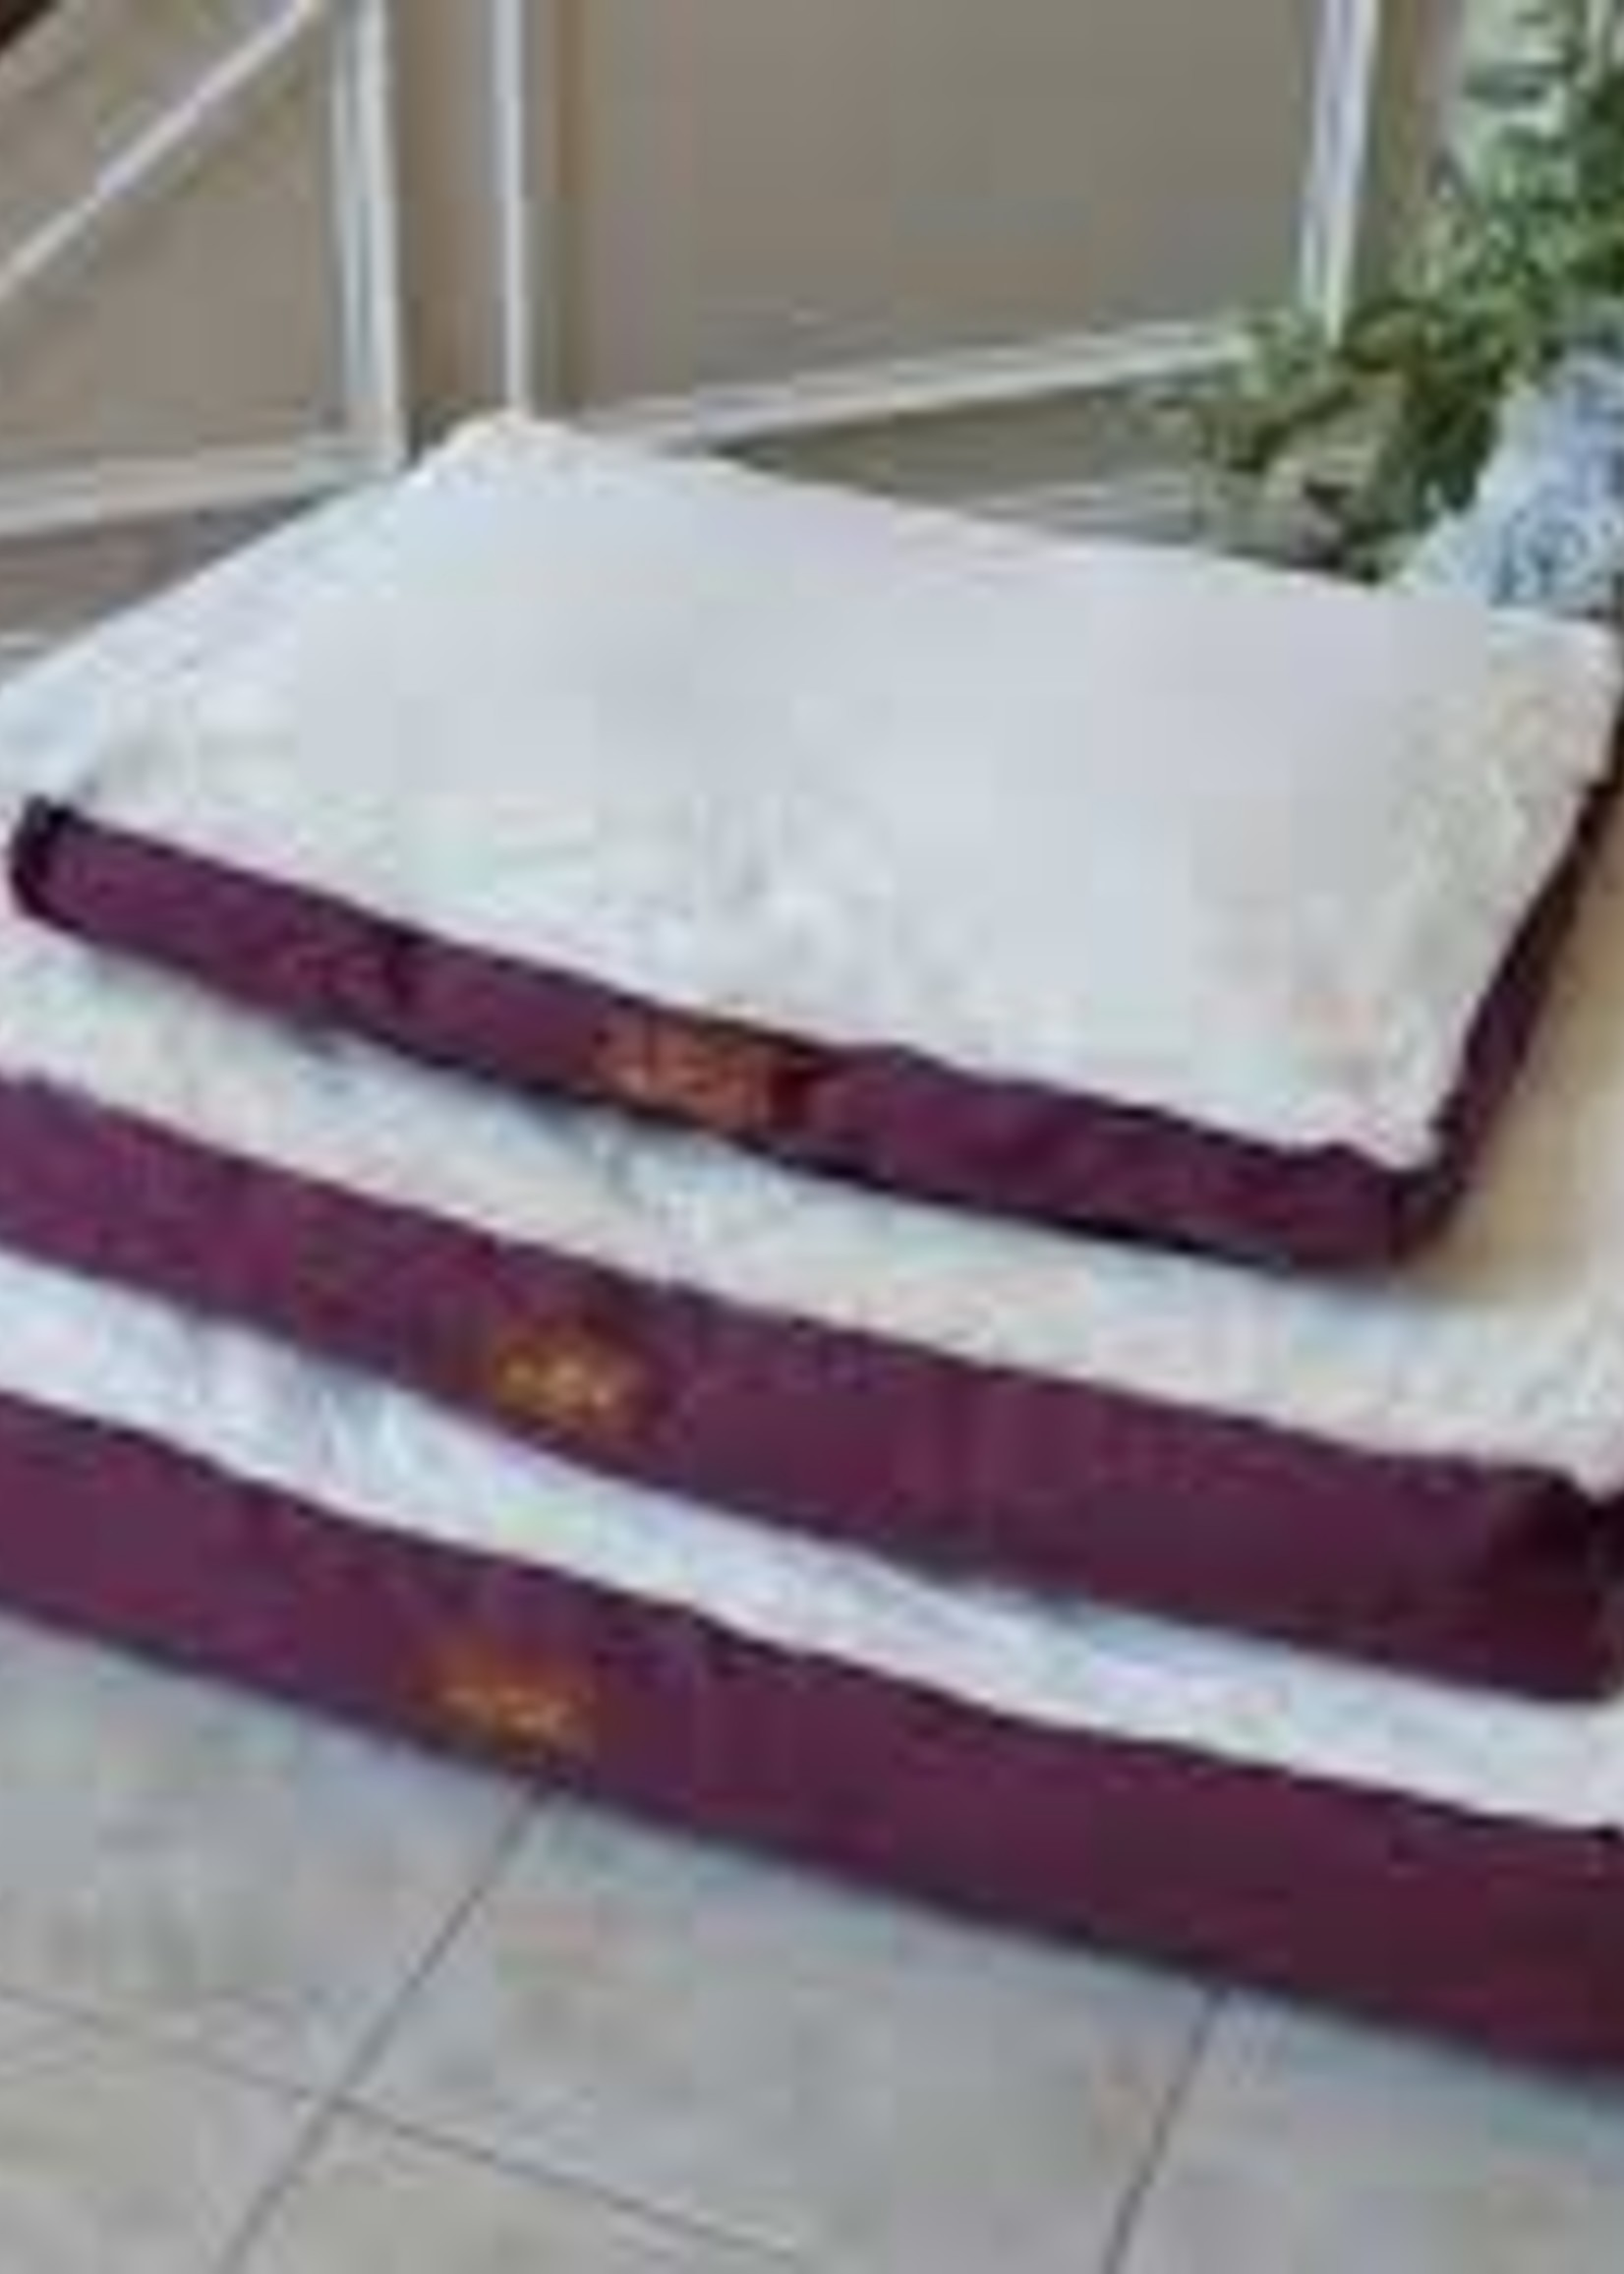 Armarkat Armarkat Large Pet Bed Mat w/Poly Fill Cushion Removable Cover Burgundy & Ivory